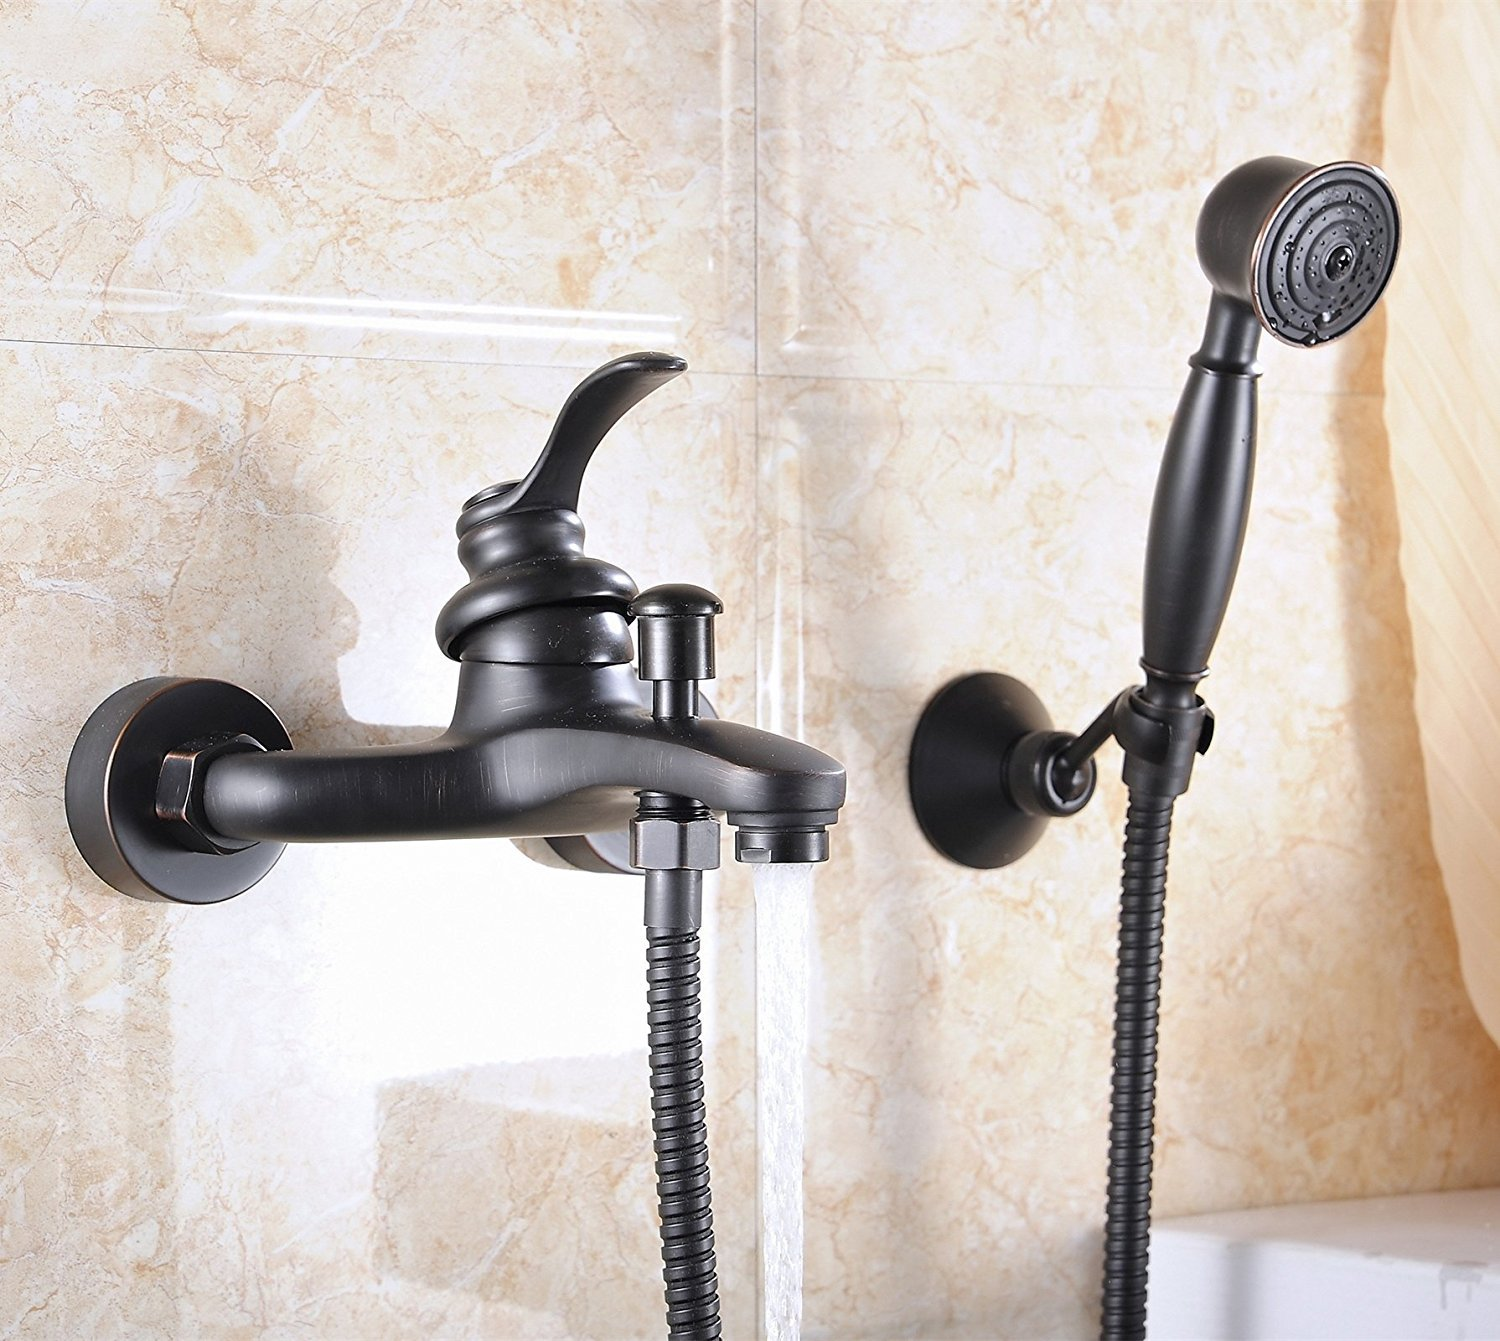 Sprinkle Oil-rubbed bronze bathroom bathtub faucet Wall-mount Two Handles Bathtub Faucet with Hand Shower Spray by Sprinkle